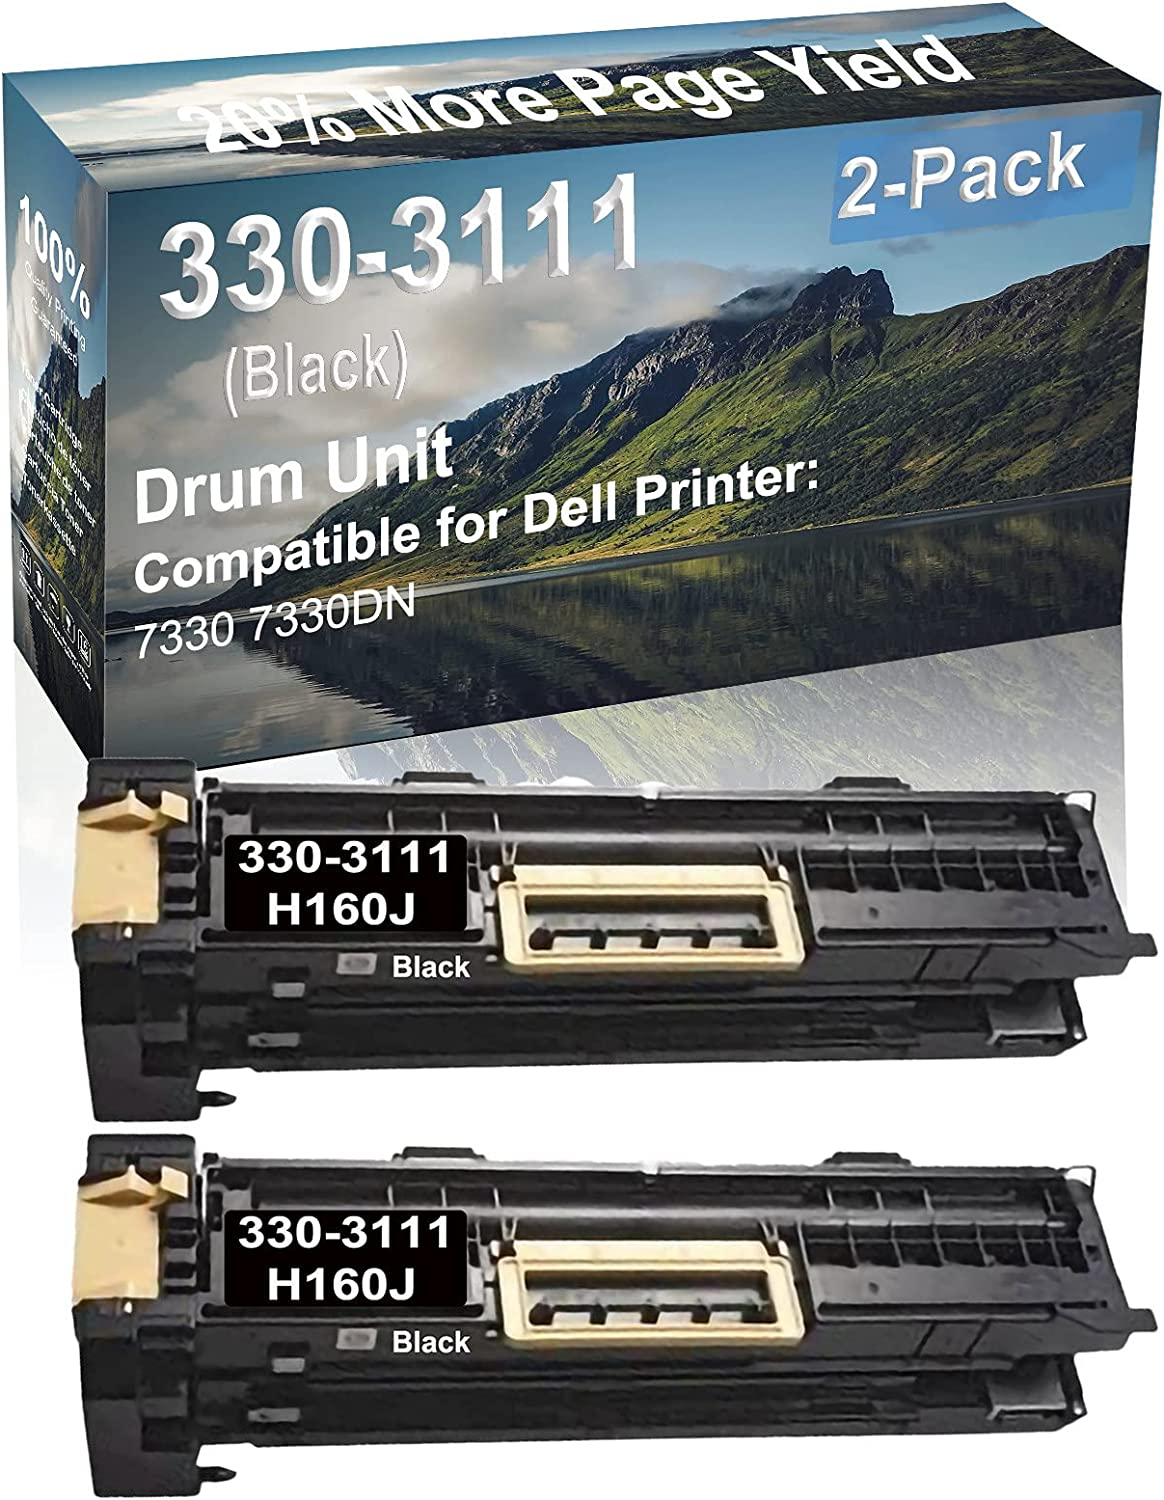 2-Pack Compatible Drum Unit (Black) Replacement for Dell 330-3111 H160J Drum Kit use for Dell 7330 7330DN Printer